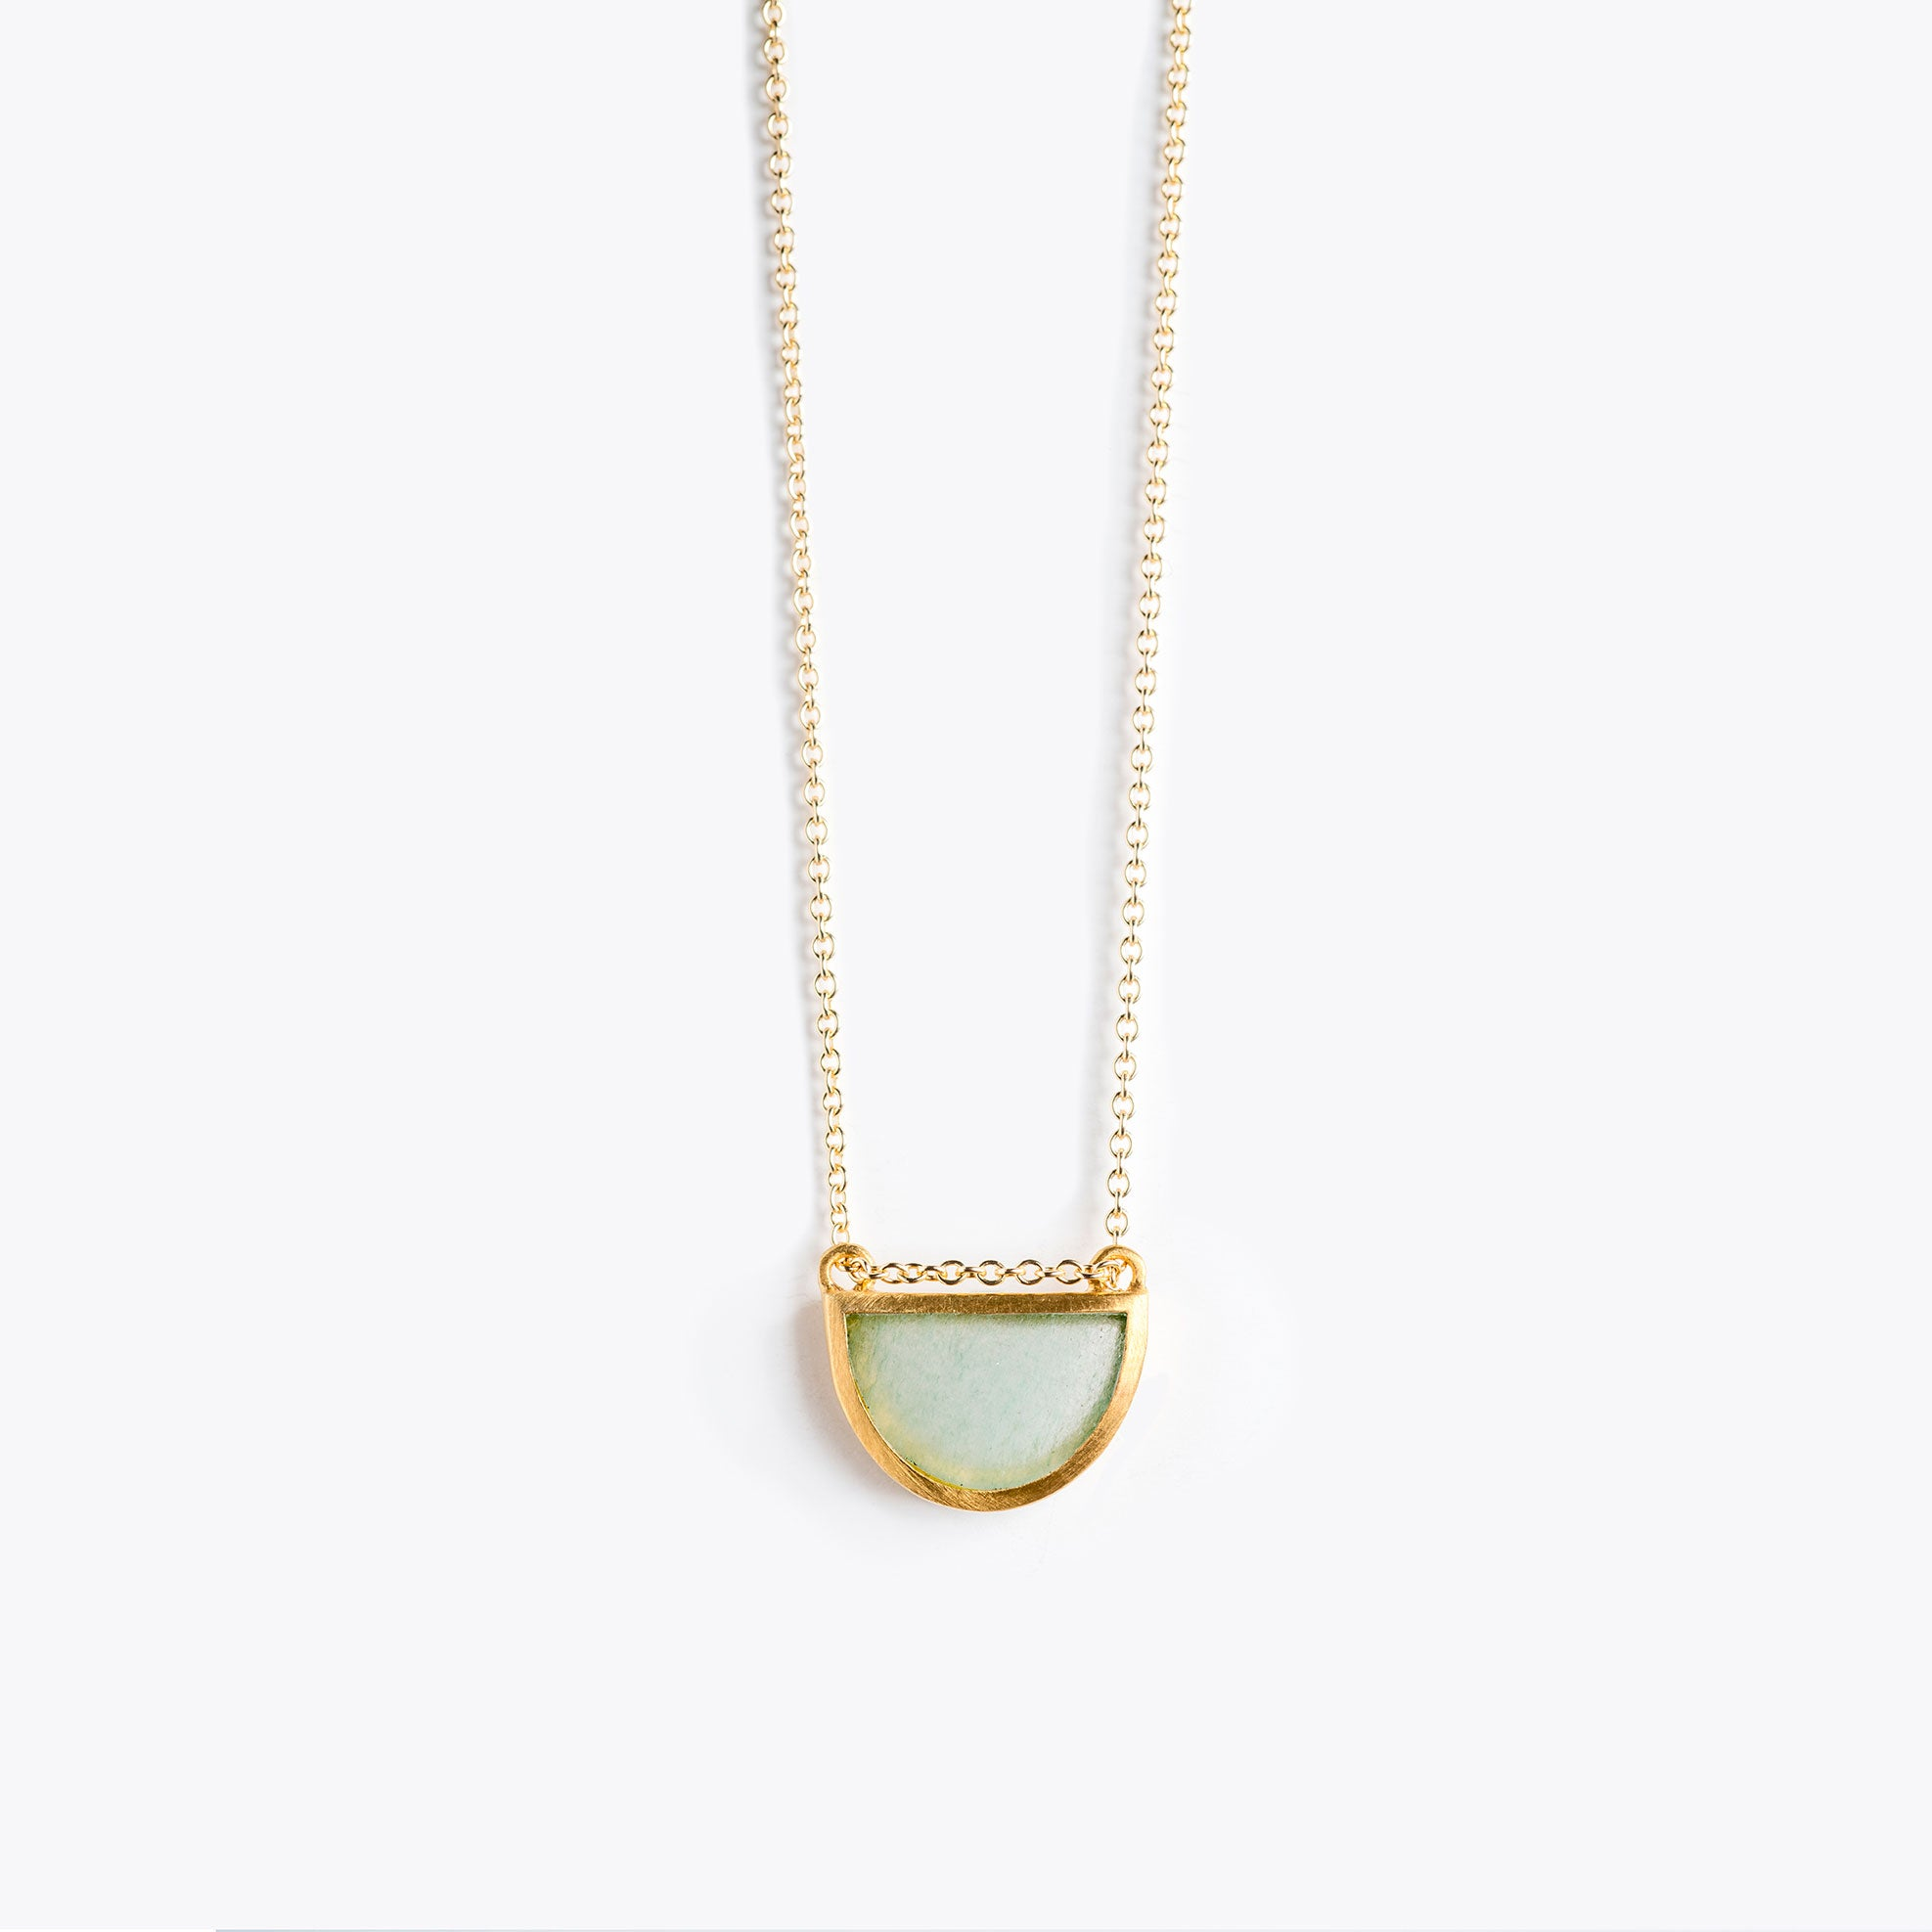 Wanderlust Life Ethically Handmade jewellery made in the UK. Minimalist gold and fine cord jewellery. sunburst fine gold chain necklace, amazonite